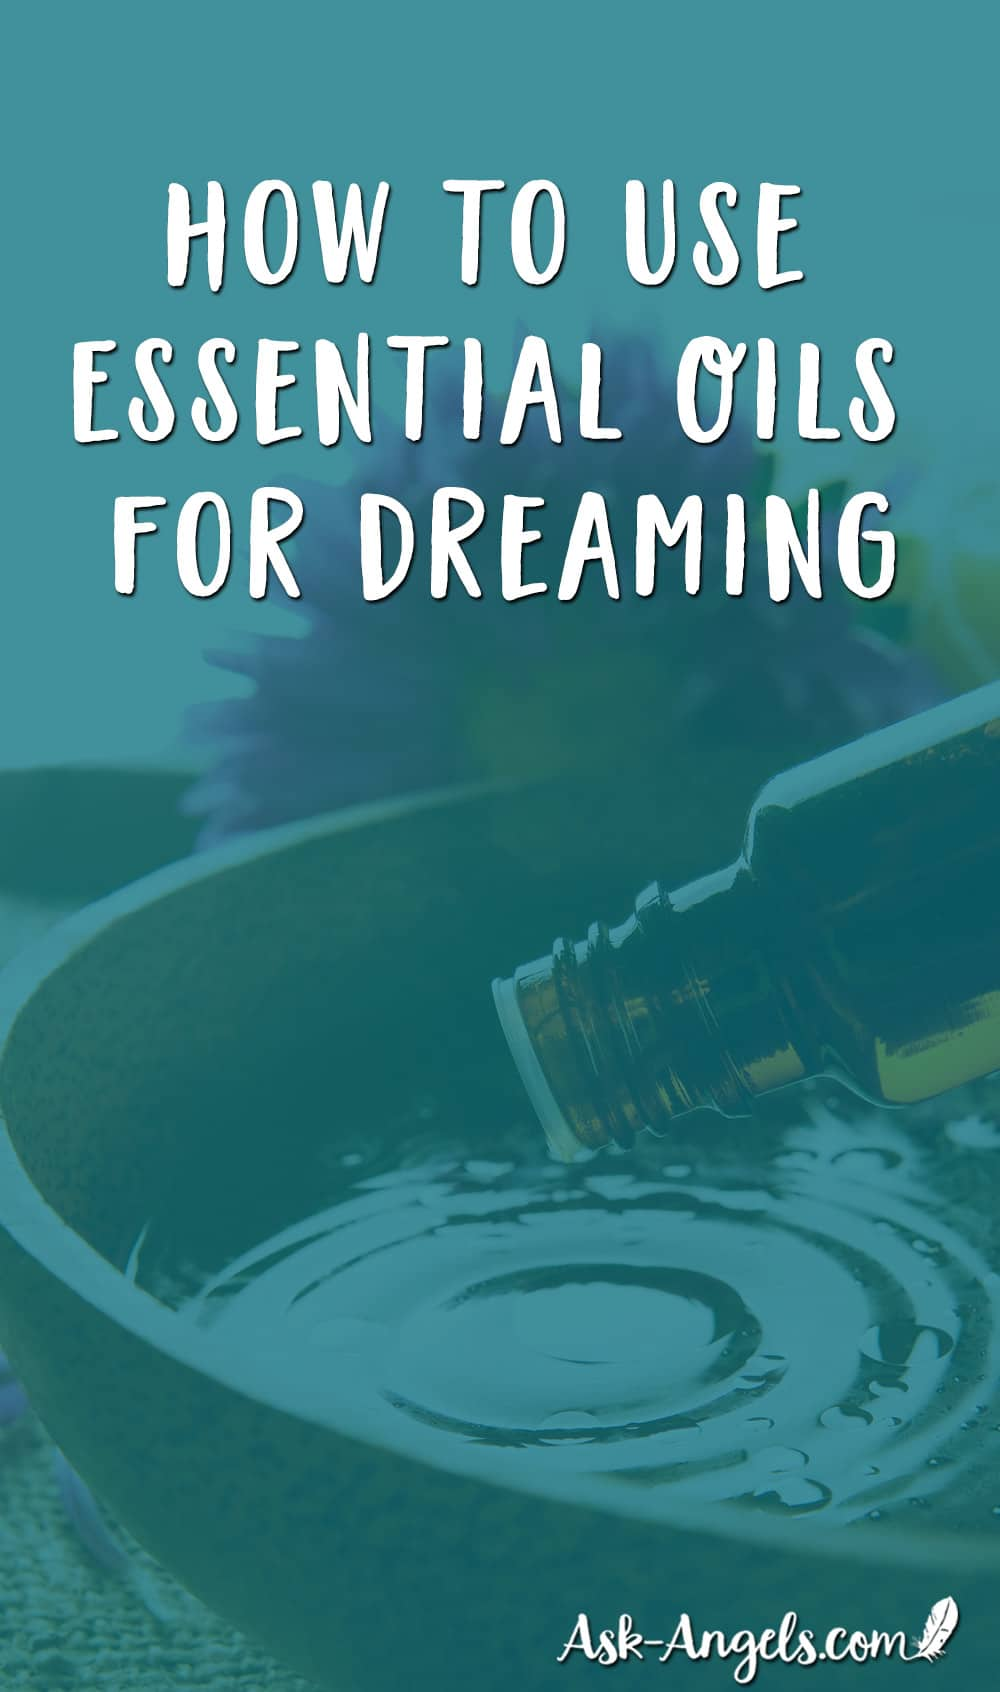 How to use essential oils for dreaming